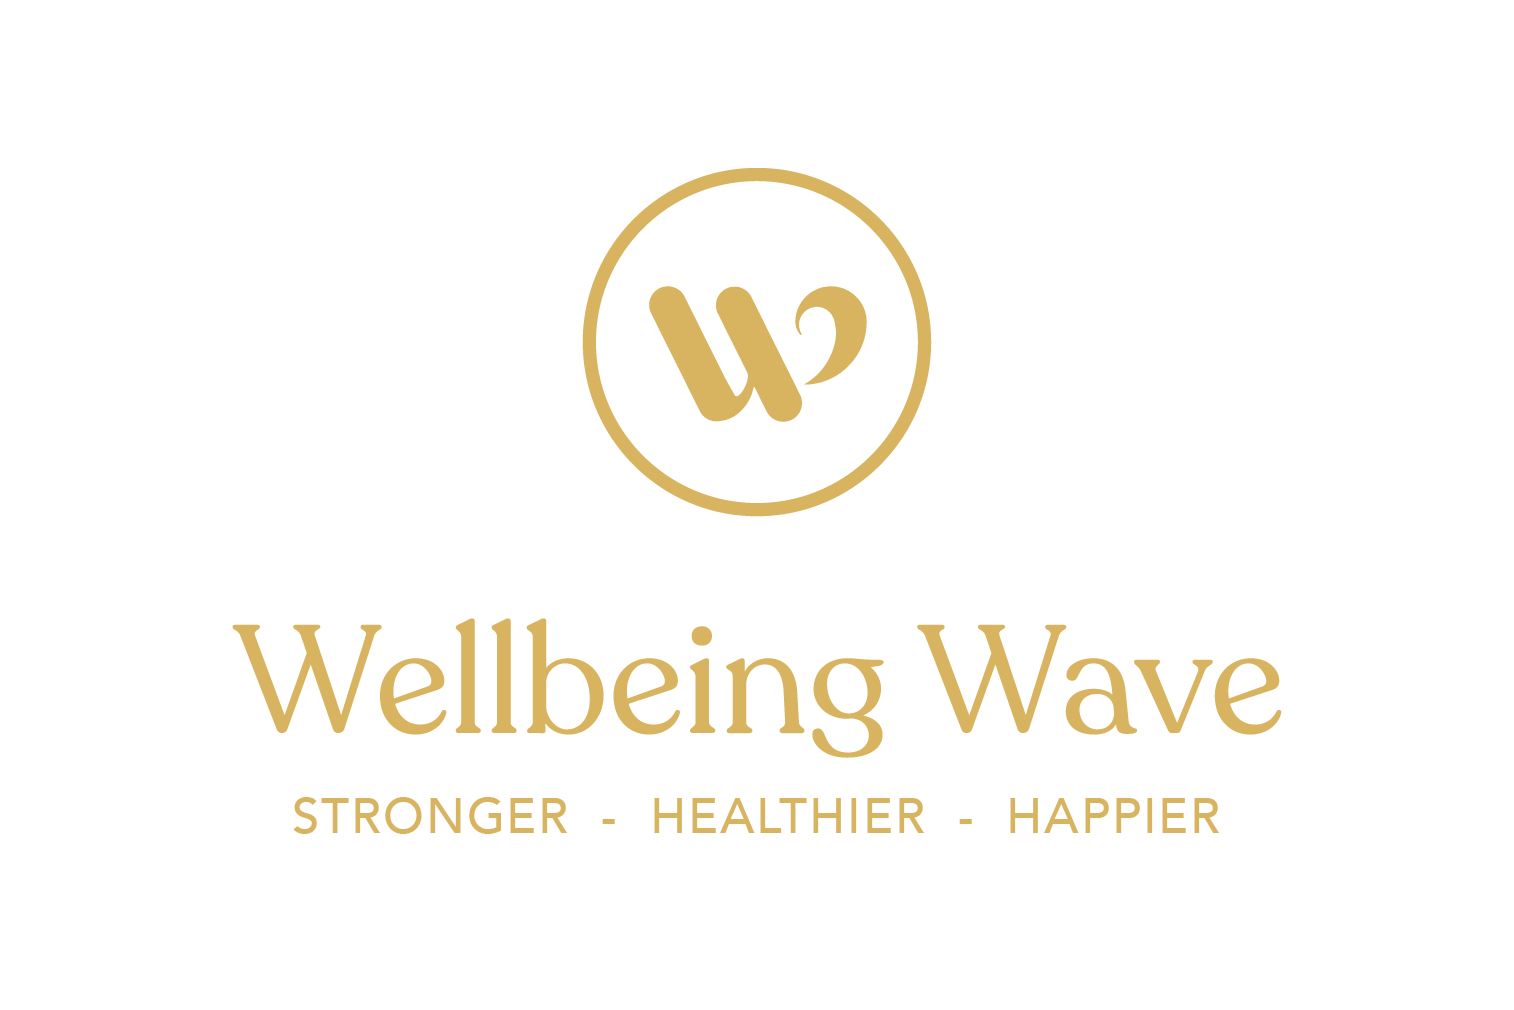 Wellbeing wave logo